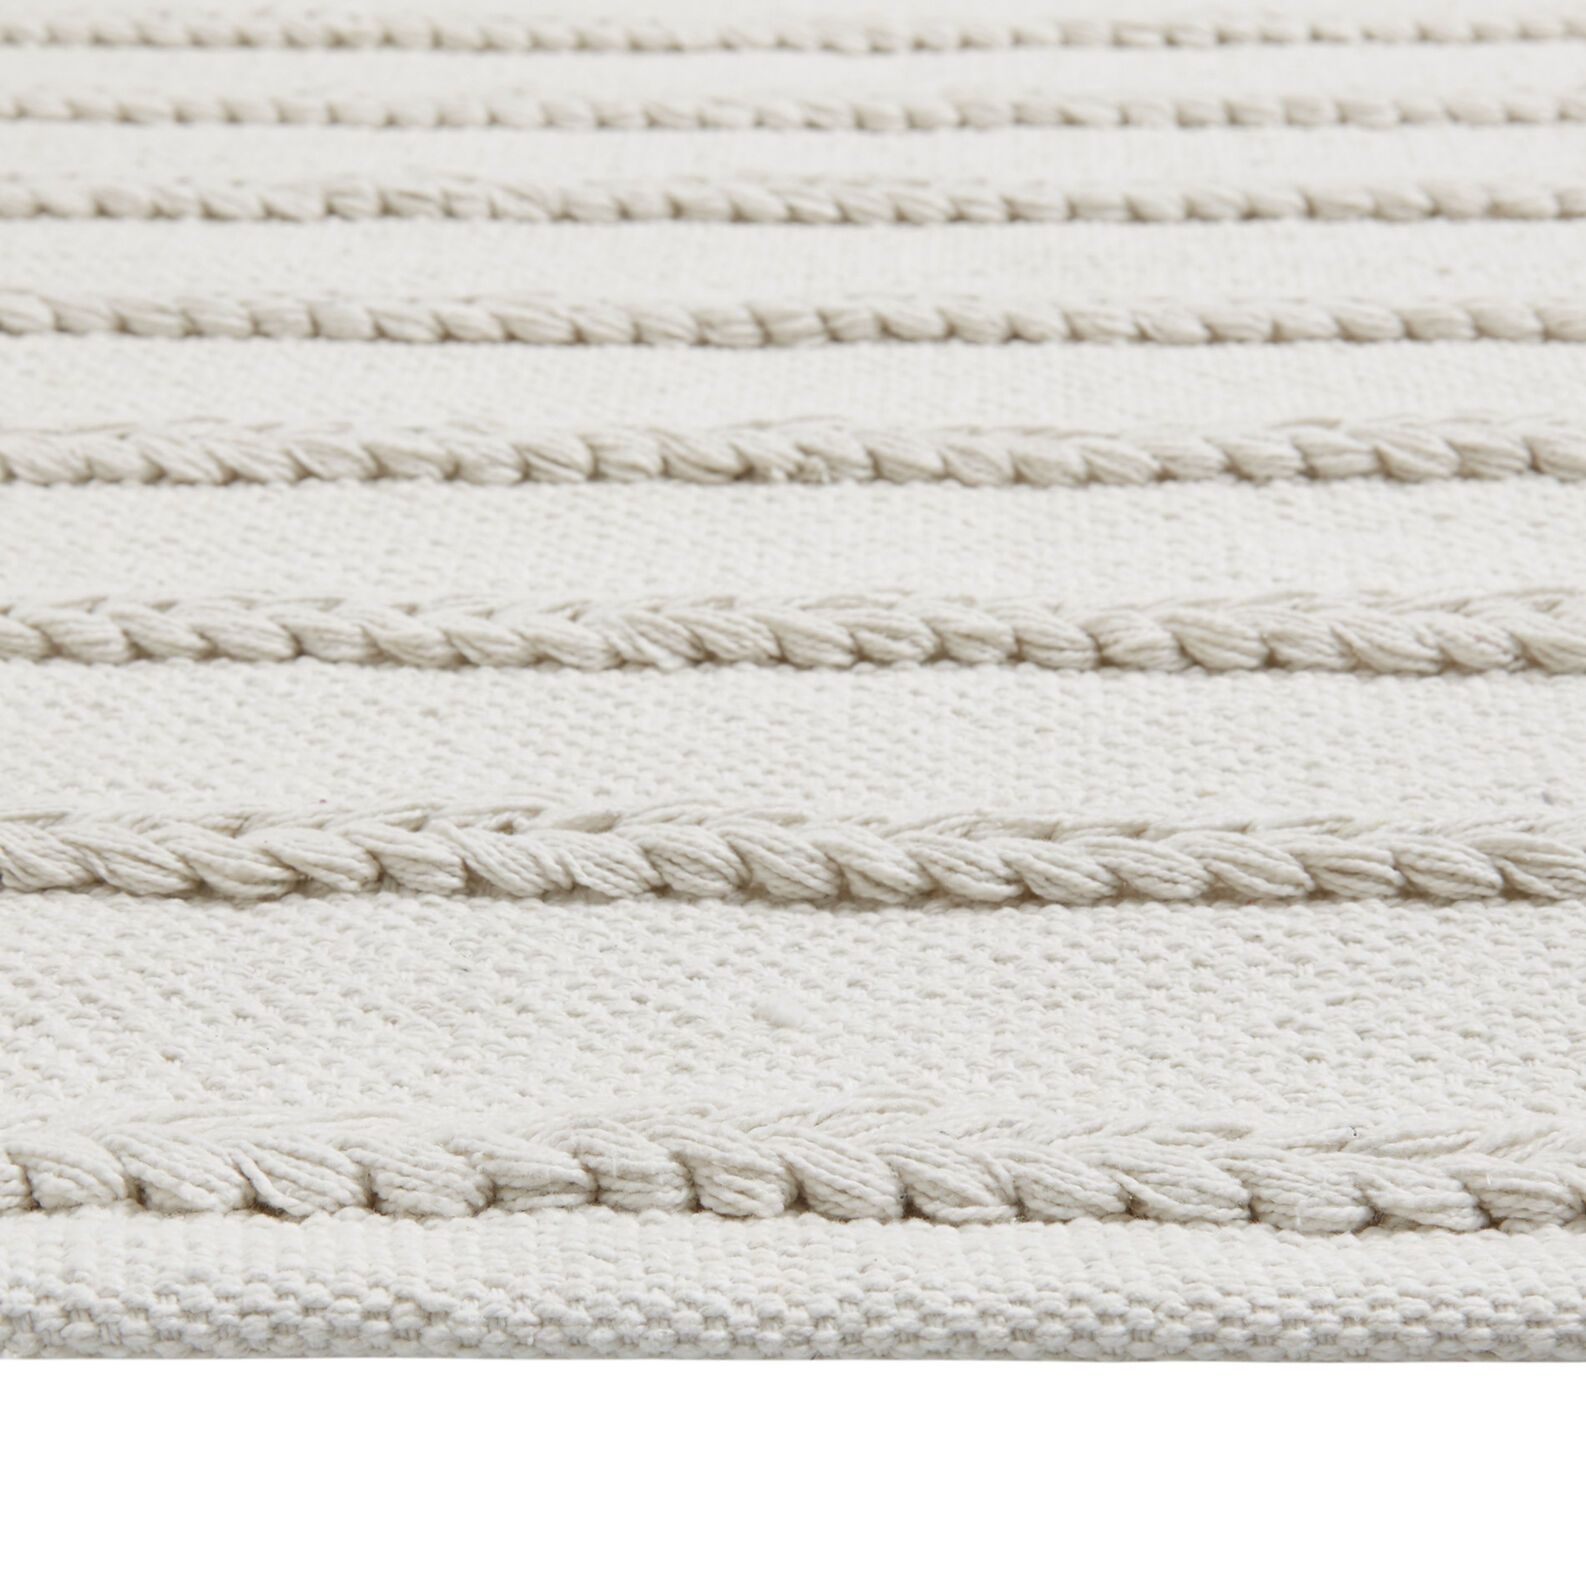 100% cotton braided bath mat